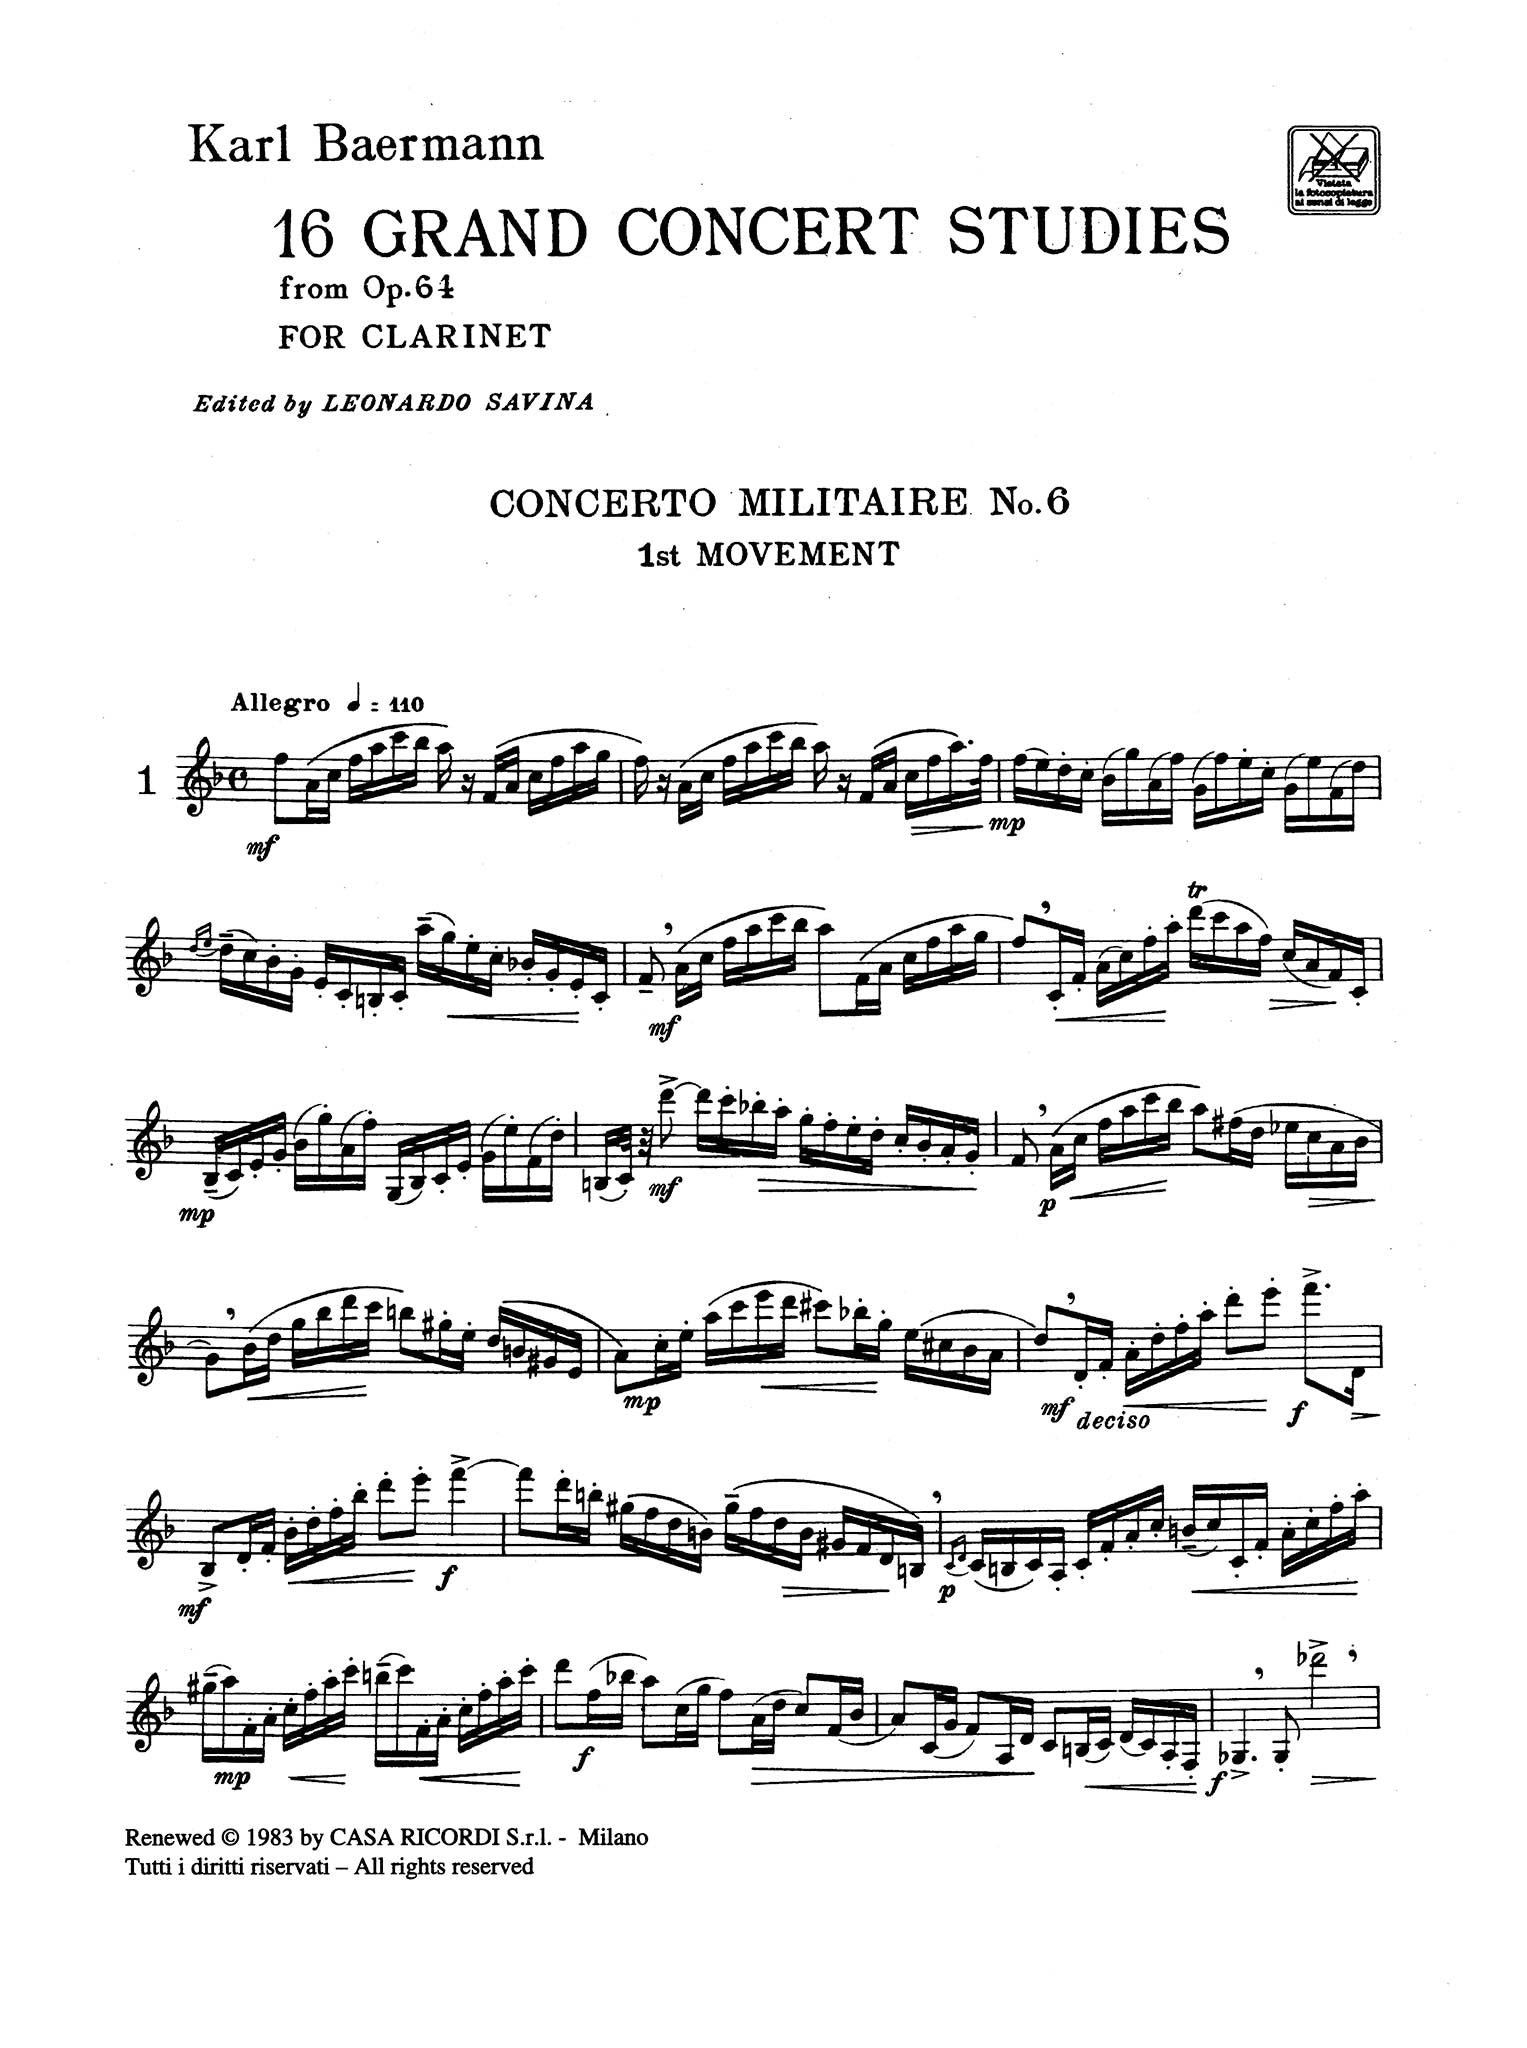 16 Grand Concert Studies for Clarinet - Page 1